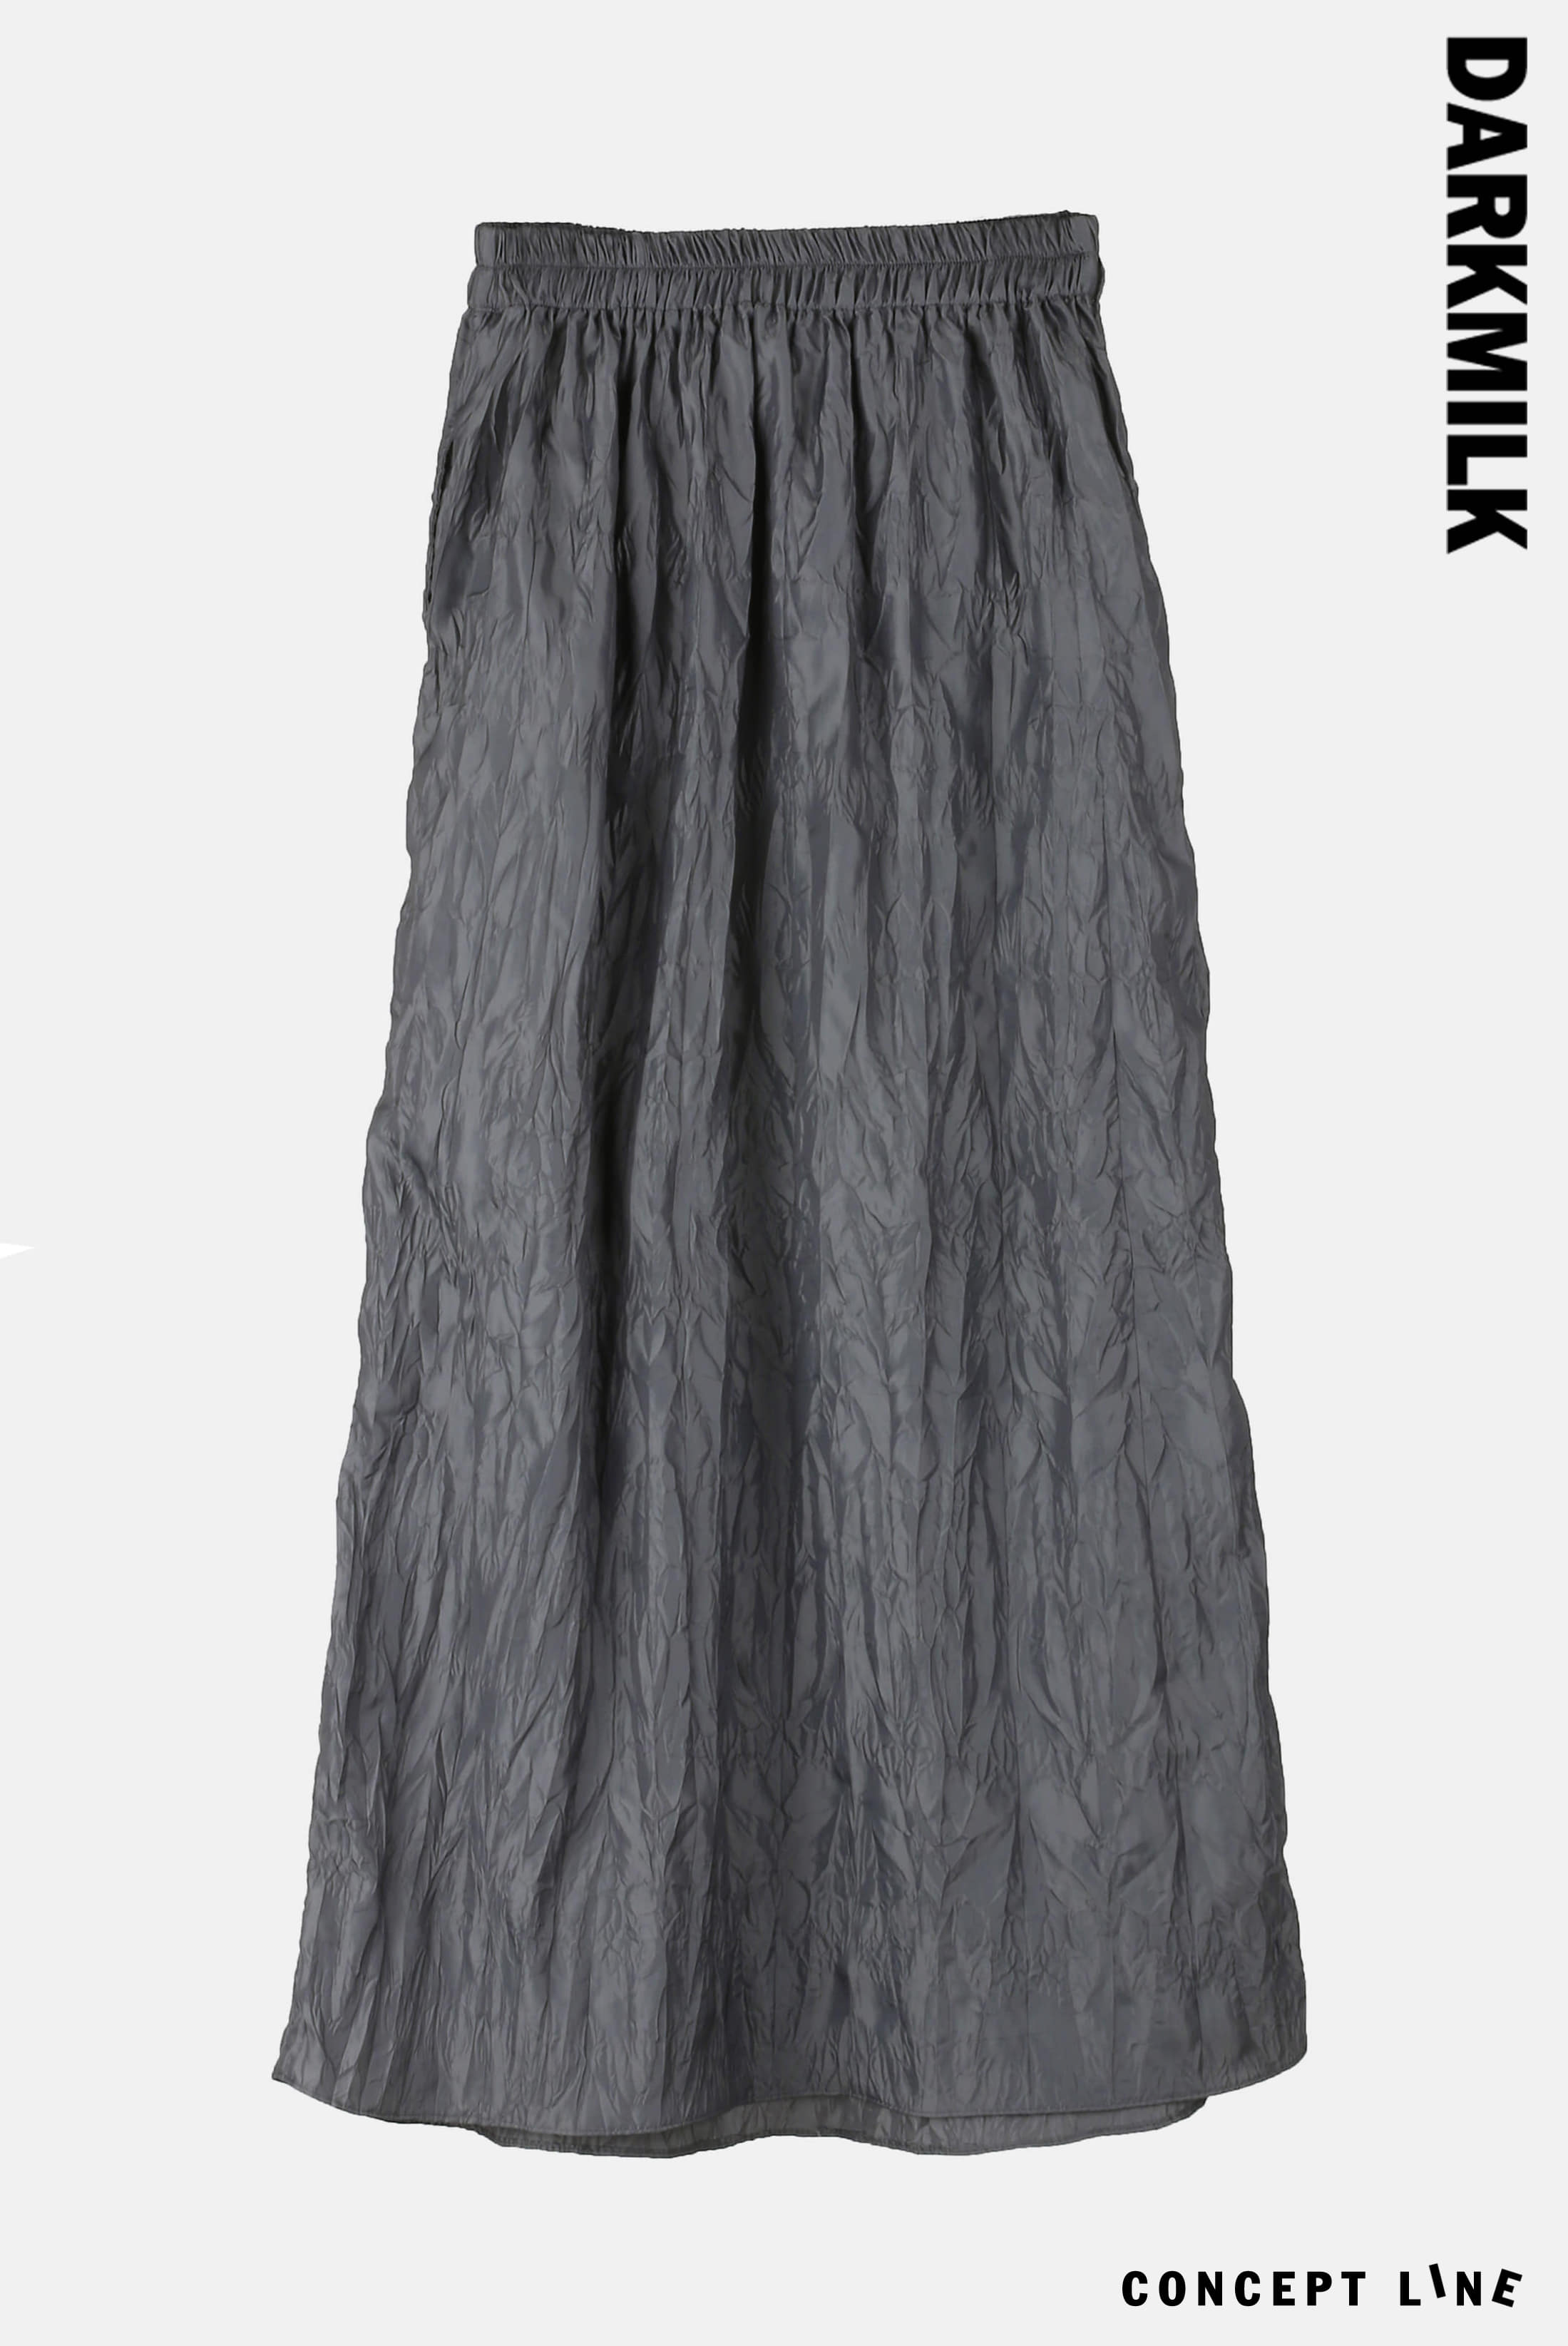 [Concept] Nylon Wrinkle_Long Skirt [Gray]